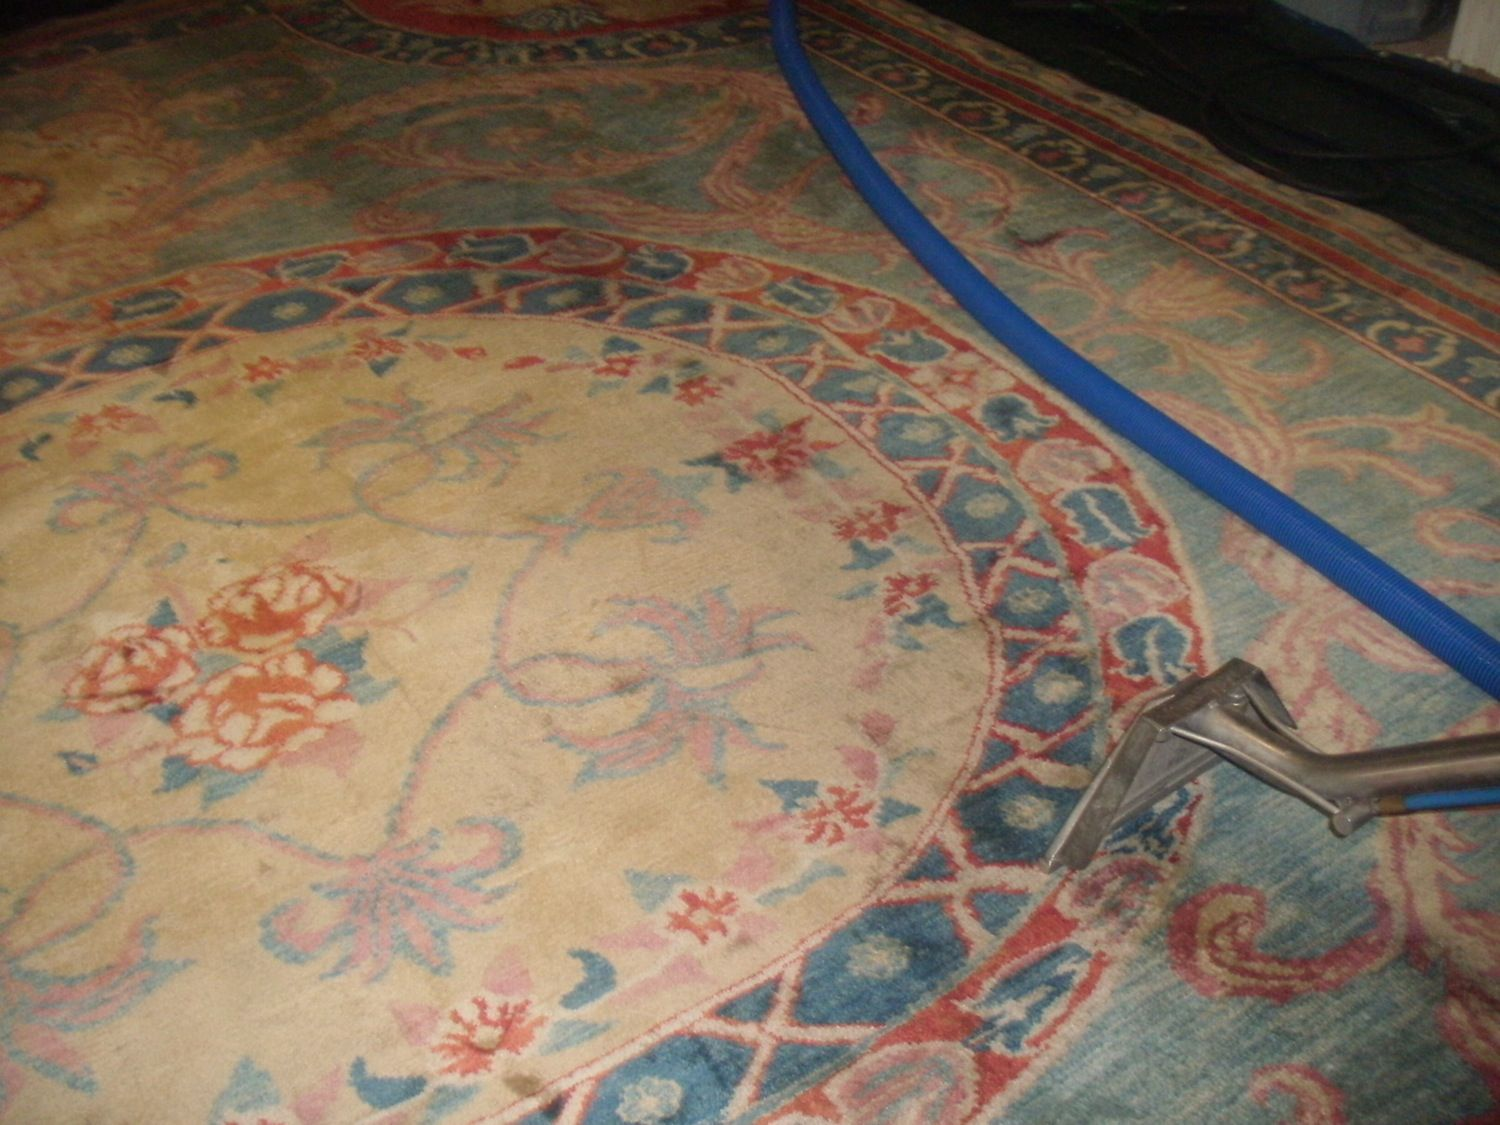 This area rug came into our facility that was very soiled with stains and grime. Using our patented tools and equipment that is specifically designed for #orientalrugcleaning, we were able to get virtually all the stains out of this rug and look brand new again.